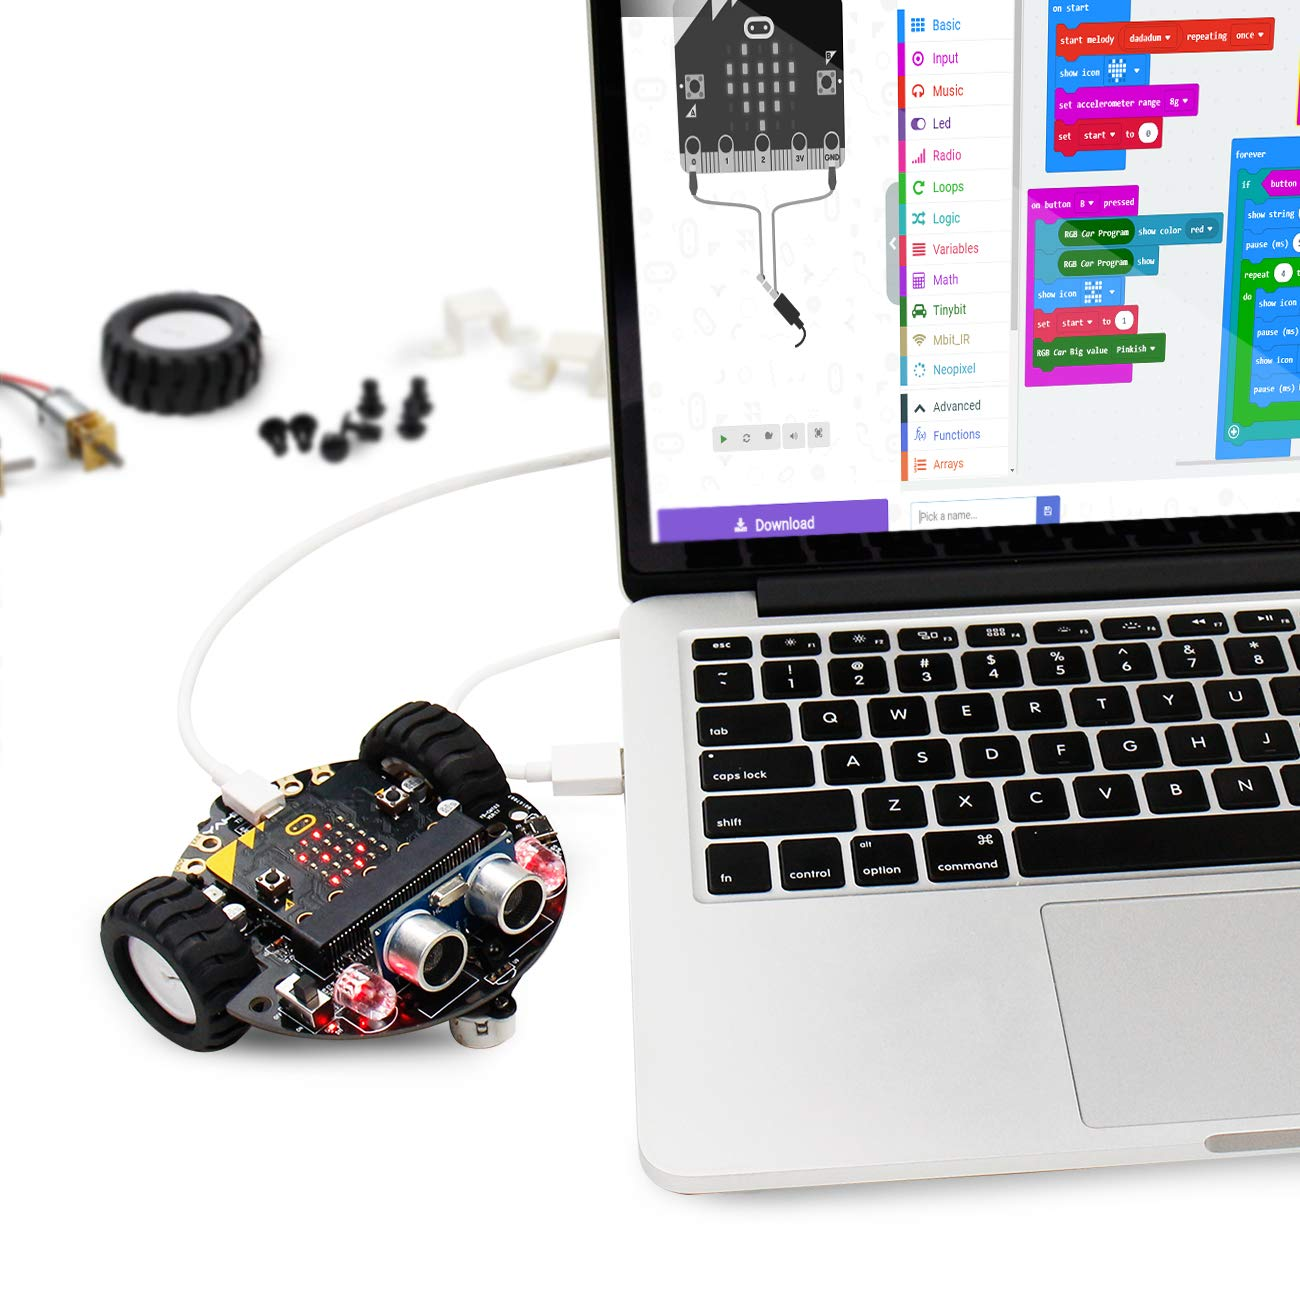 Yahboom Robot Kit for Micro:bit to Learn Programming STEM Education Toy Car for Kids 8+ (Without Micro:bit) by Yahboom (Image #4)